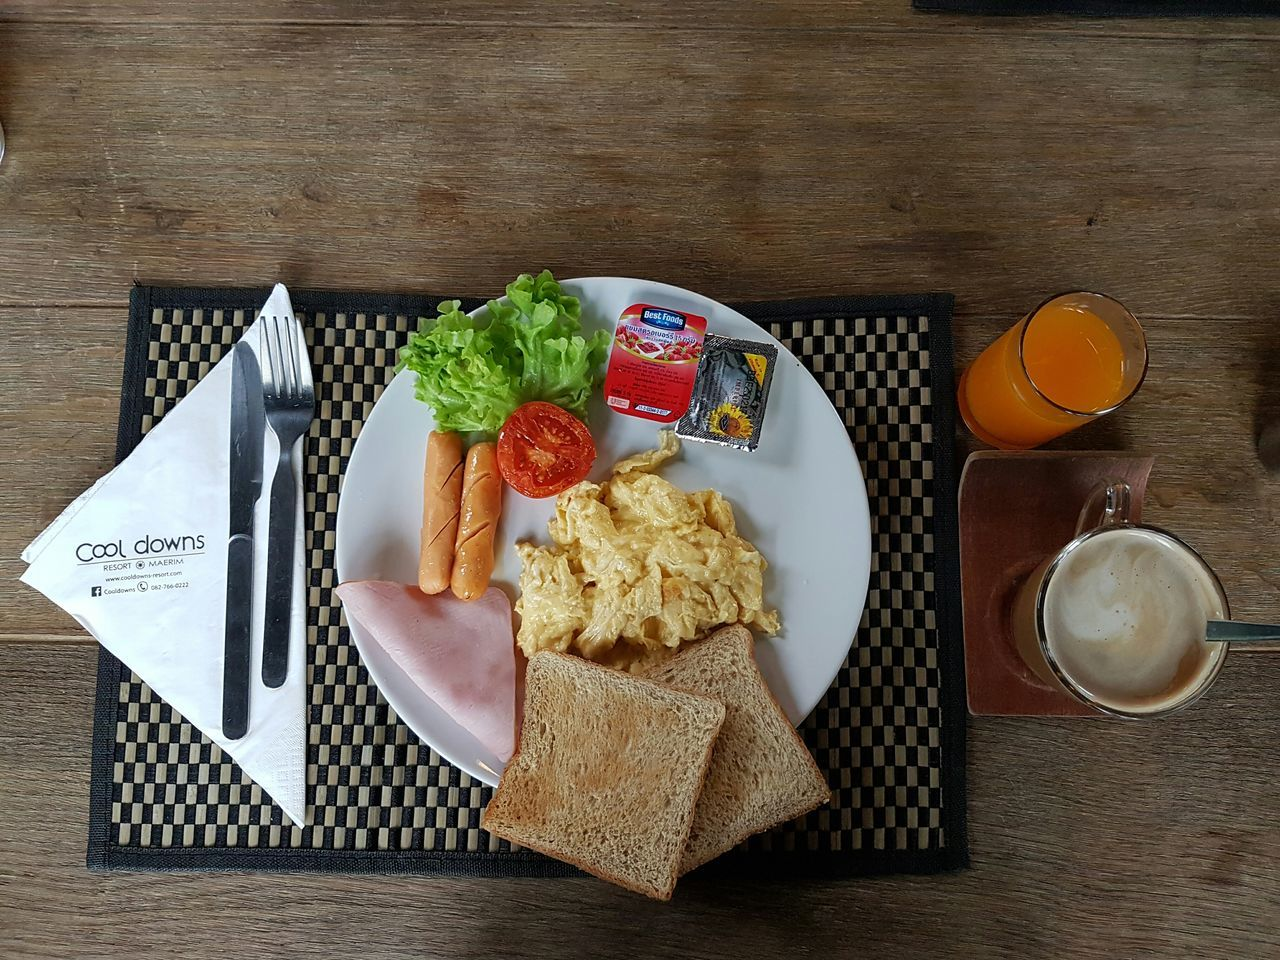 food and drink, food, table, plate, indoors, freshness, healthy eating, serving size, ready-to-eat, no people, breakfast, day